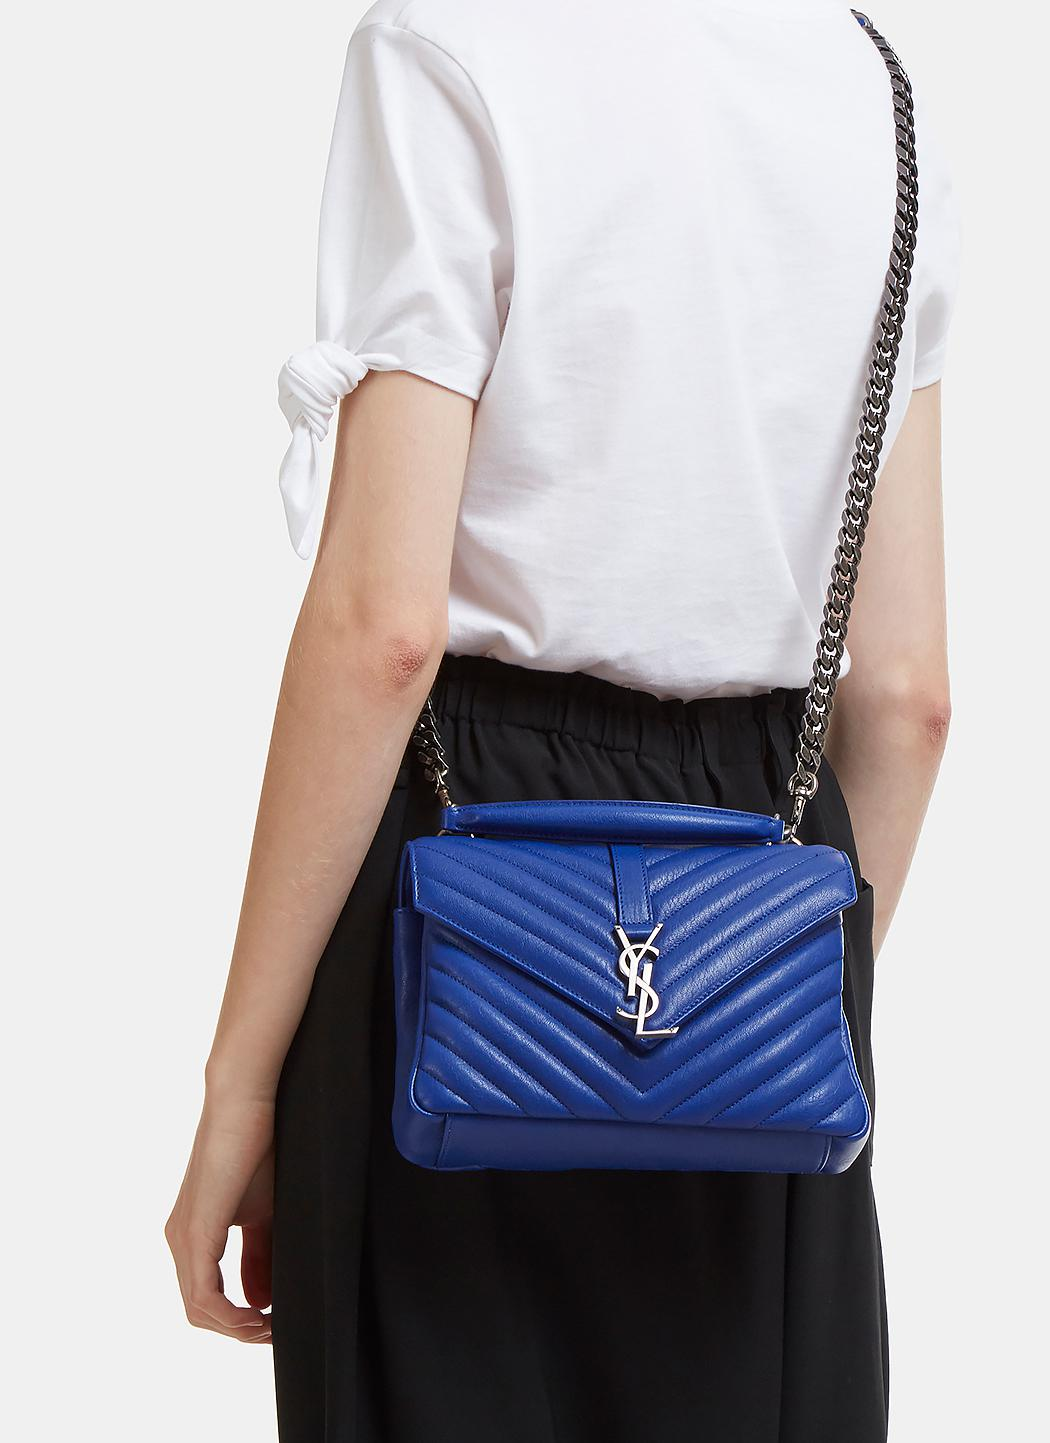 Lyst - Saint Laurent Medium Quilted College Bag In Blue in Blue 141e2bb60e97b